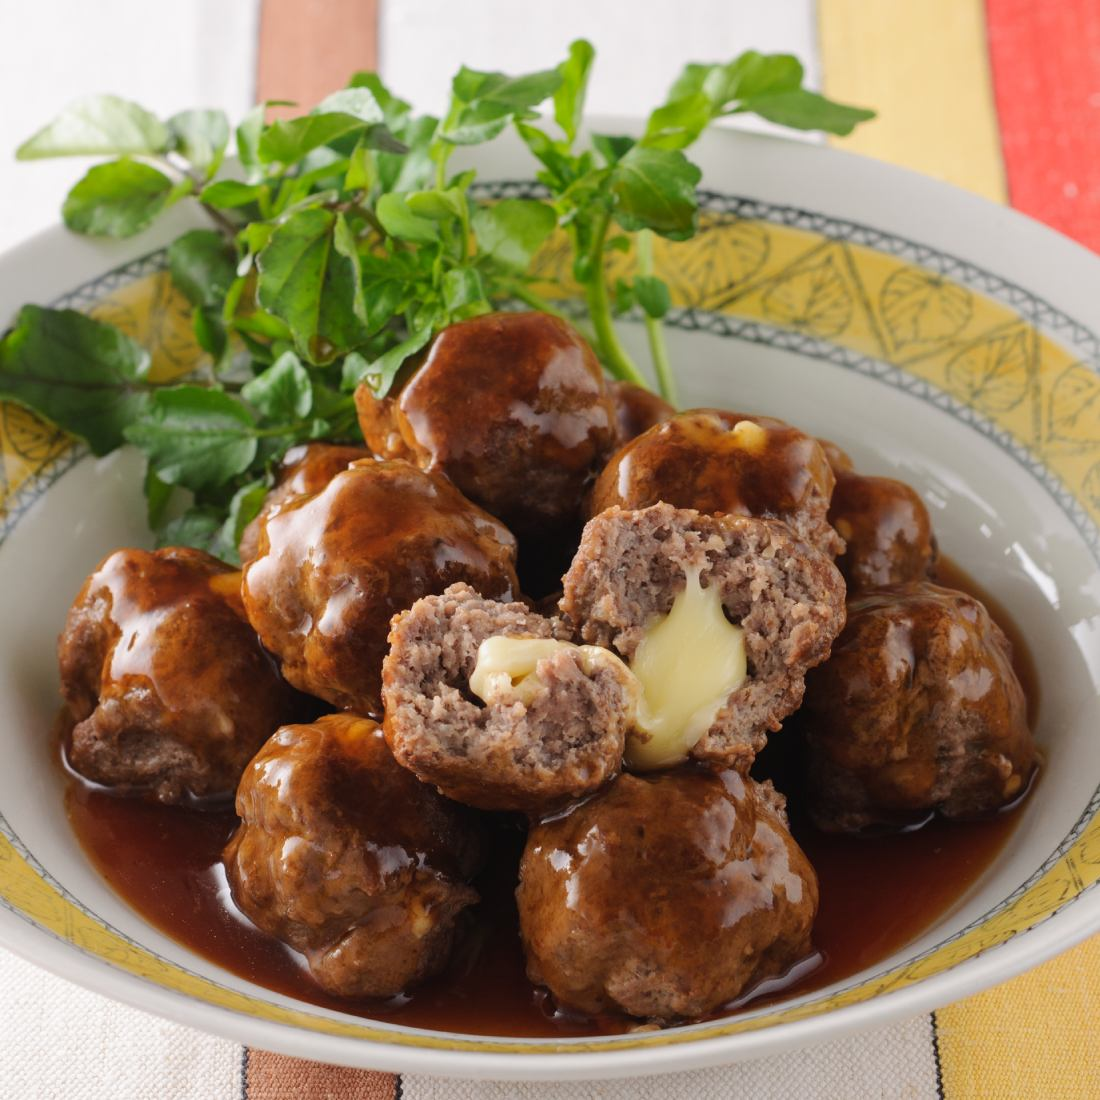 Cheese-stuffed meatballs